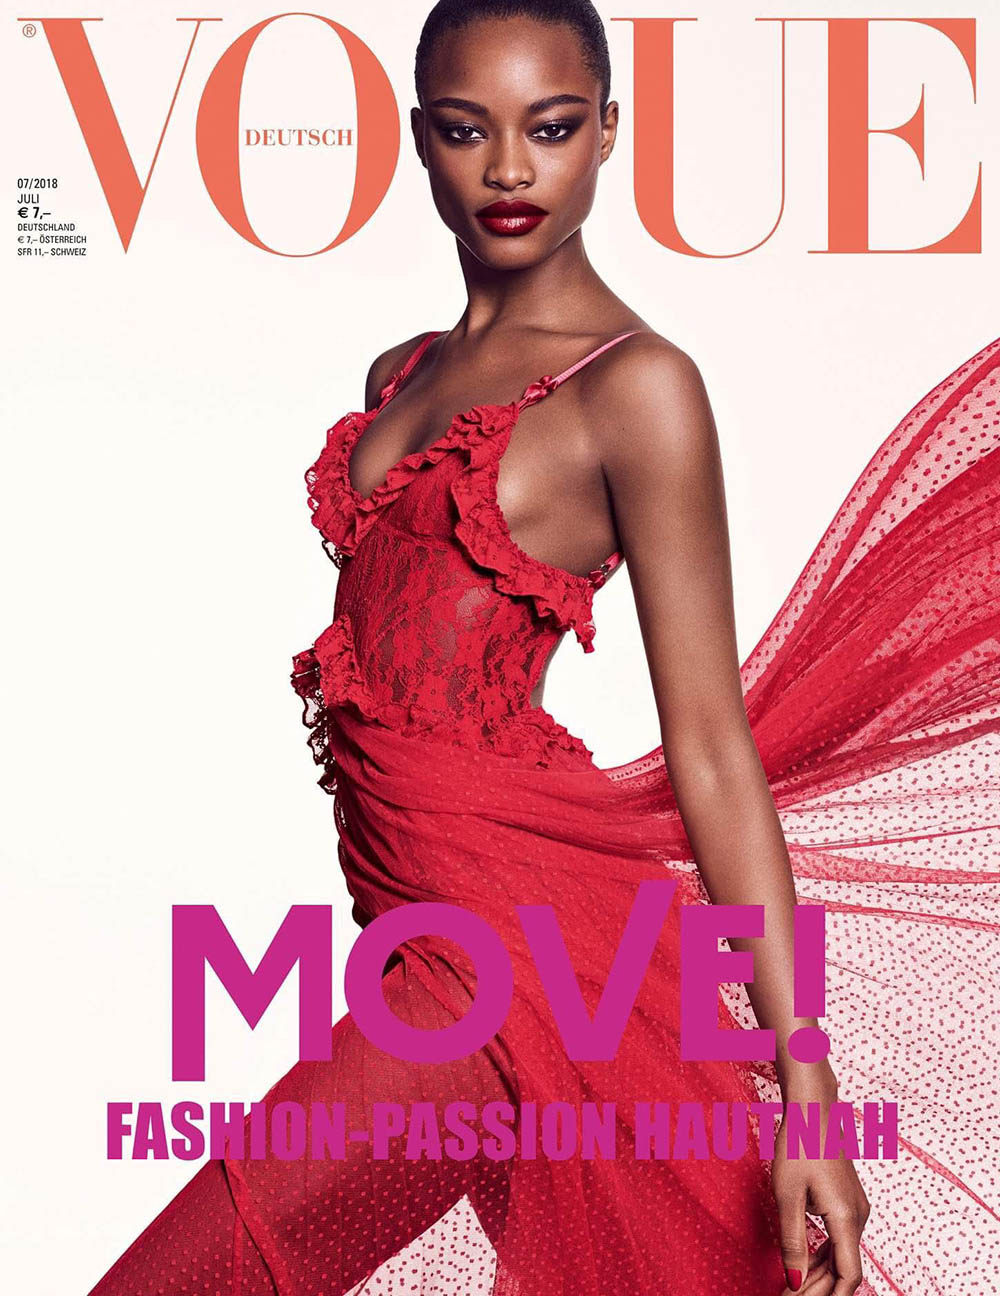 Fran Summers, Mayowa Nicholas and Vittoria Ceretti cover Vogue Germany July 2018 by Luigi & Iango